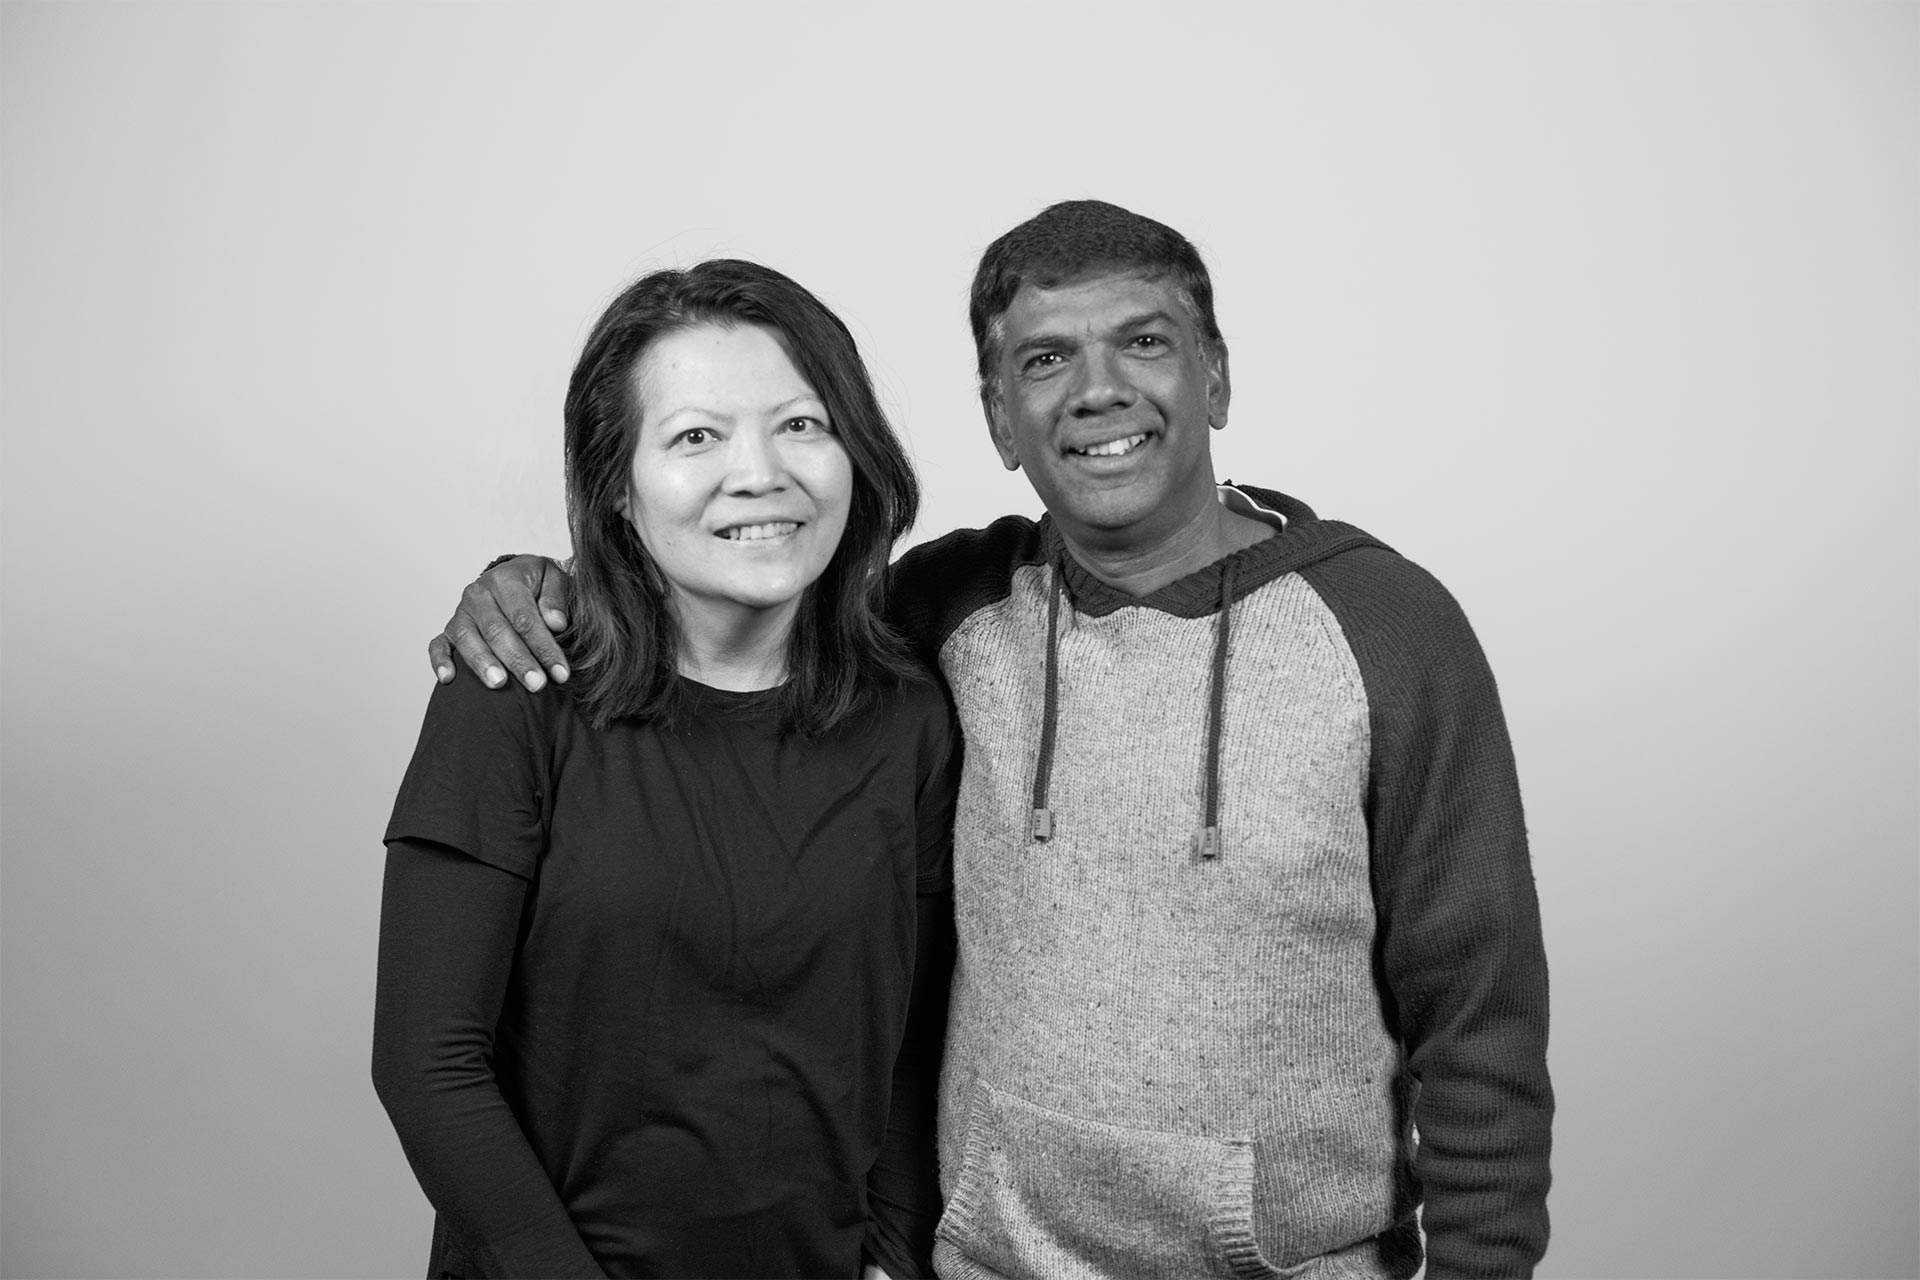 Michael & Chiewhar Raj - Casey campus pastorsMichael and ChiewHar Raj are pastors of both our Casey and Monash Campuses. Knowing every great Malaysian restaurant in Melbourne, Michael and ChiewHar are full of life and passion for God and his people. They do a brilliant job of leading these two campuses.